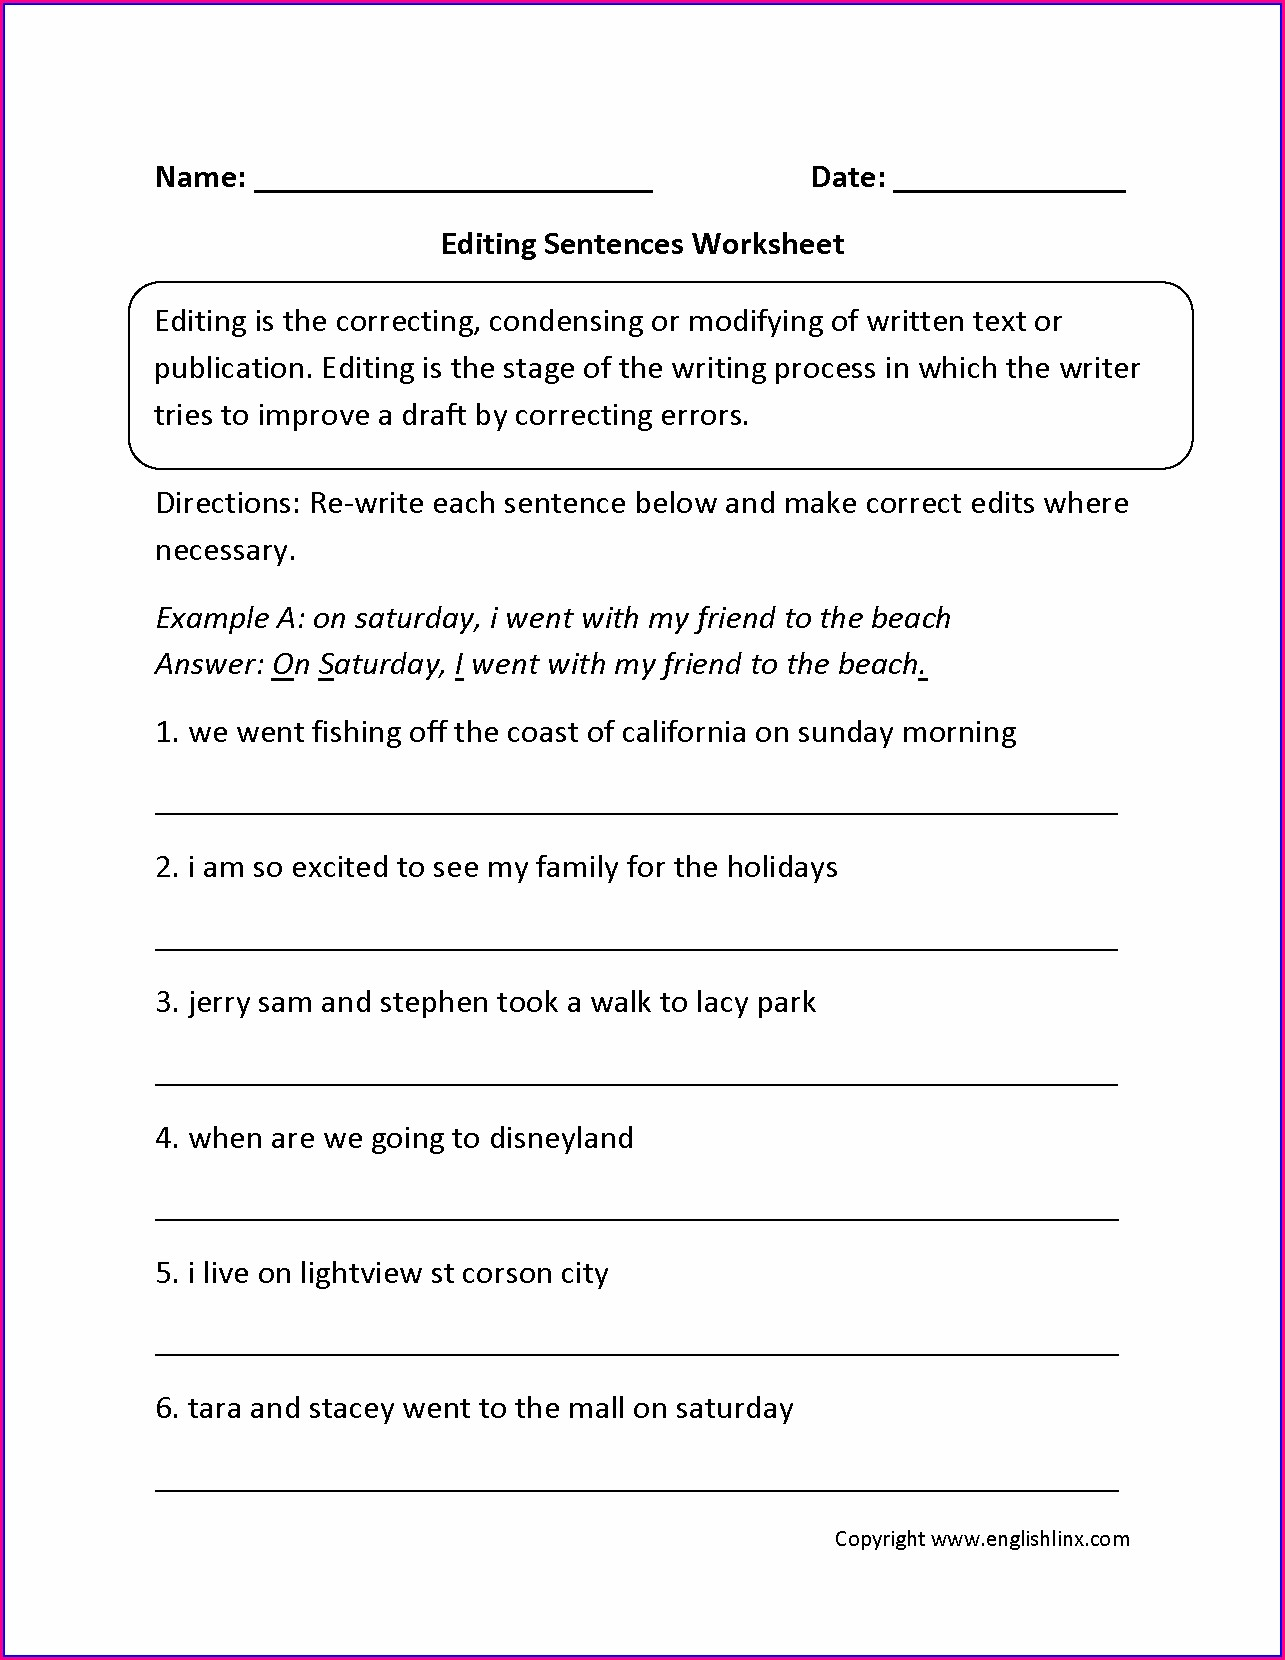 School Worksheets For 6th Graders